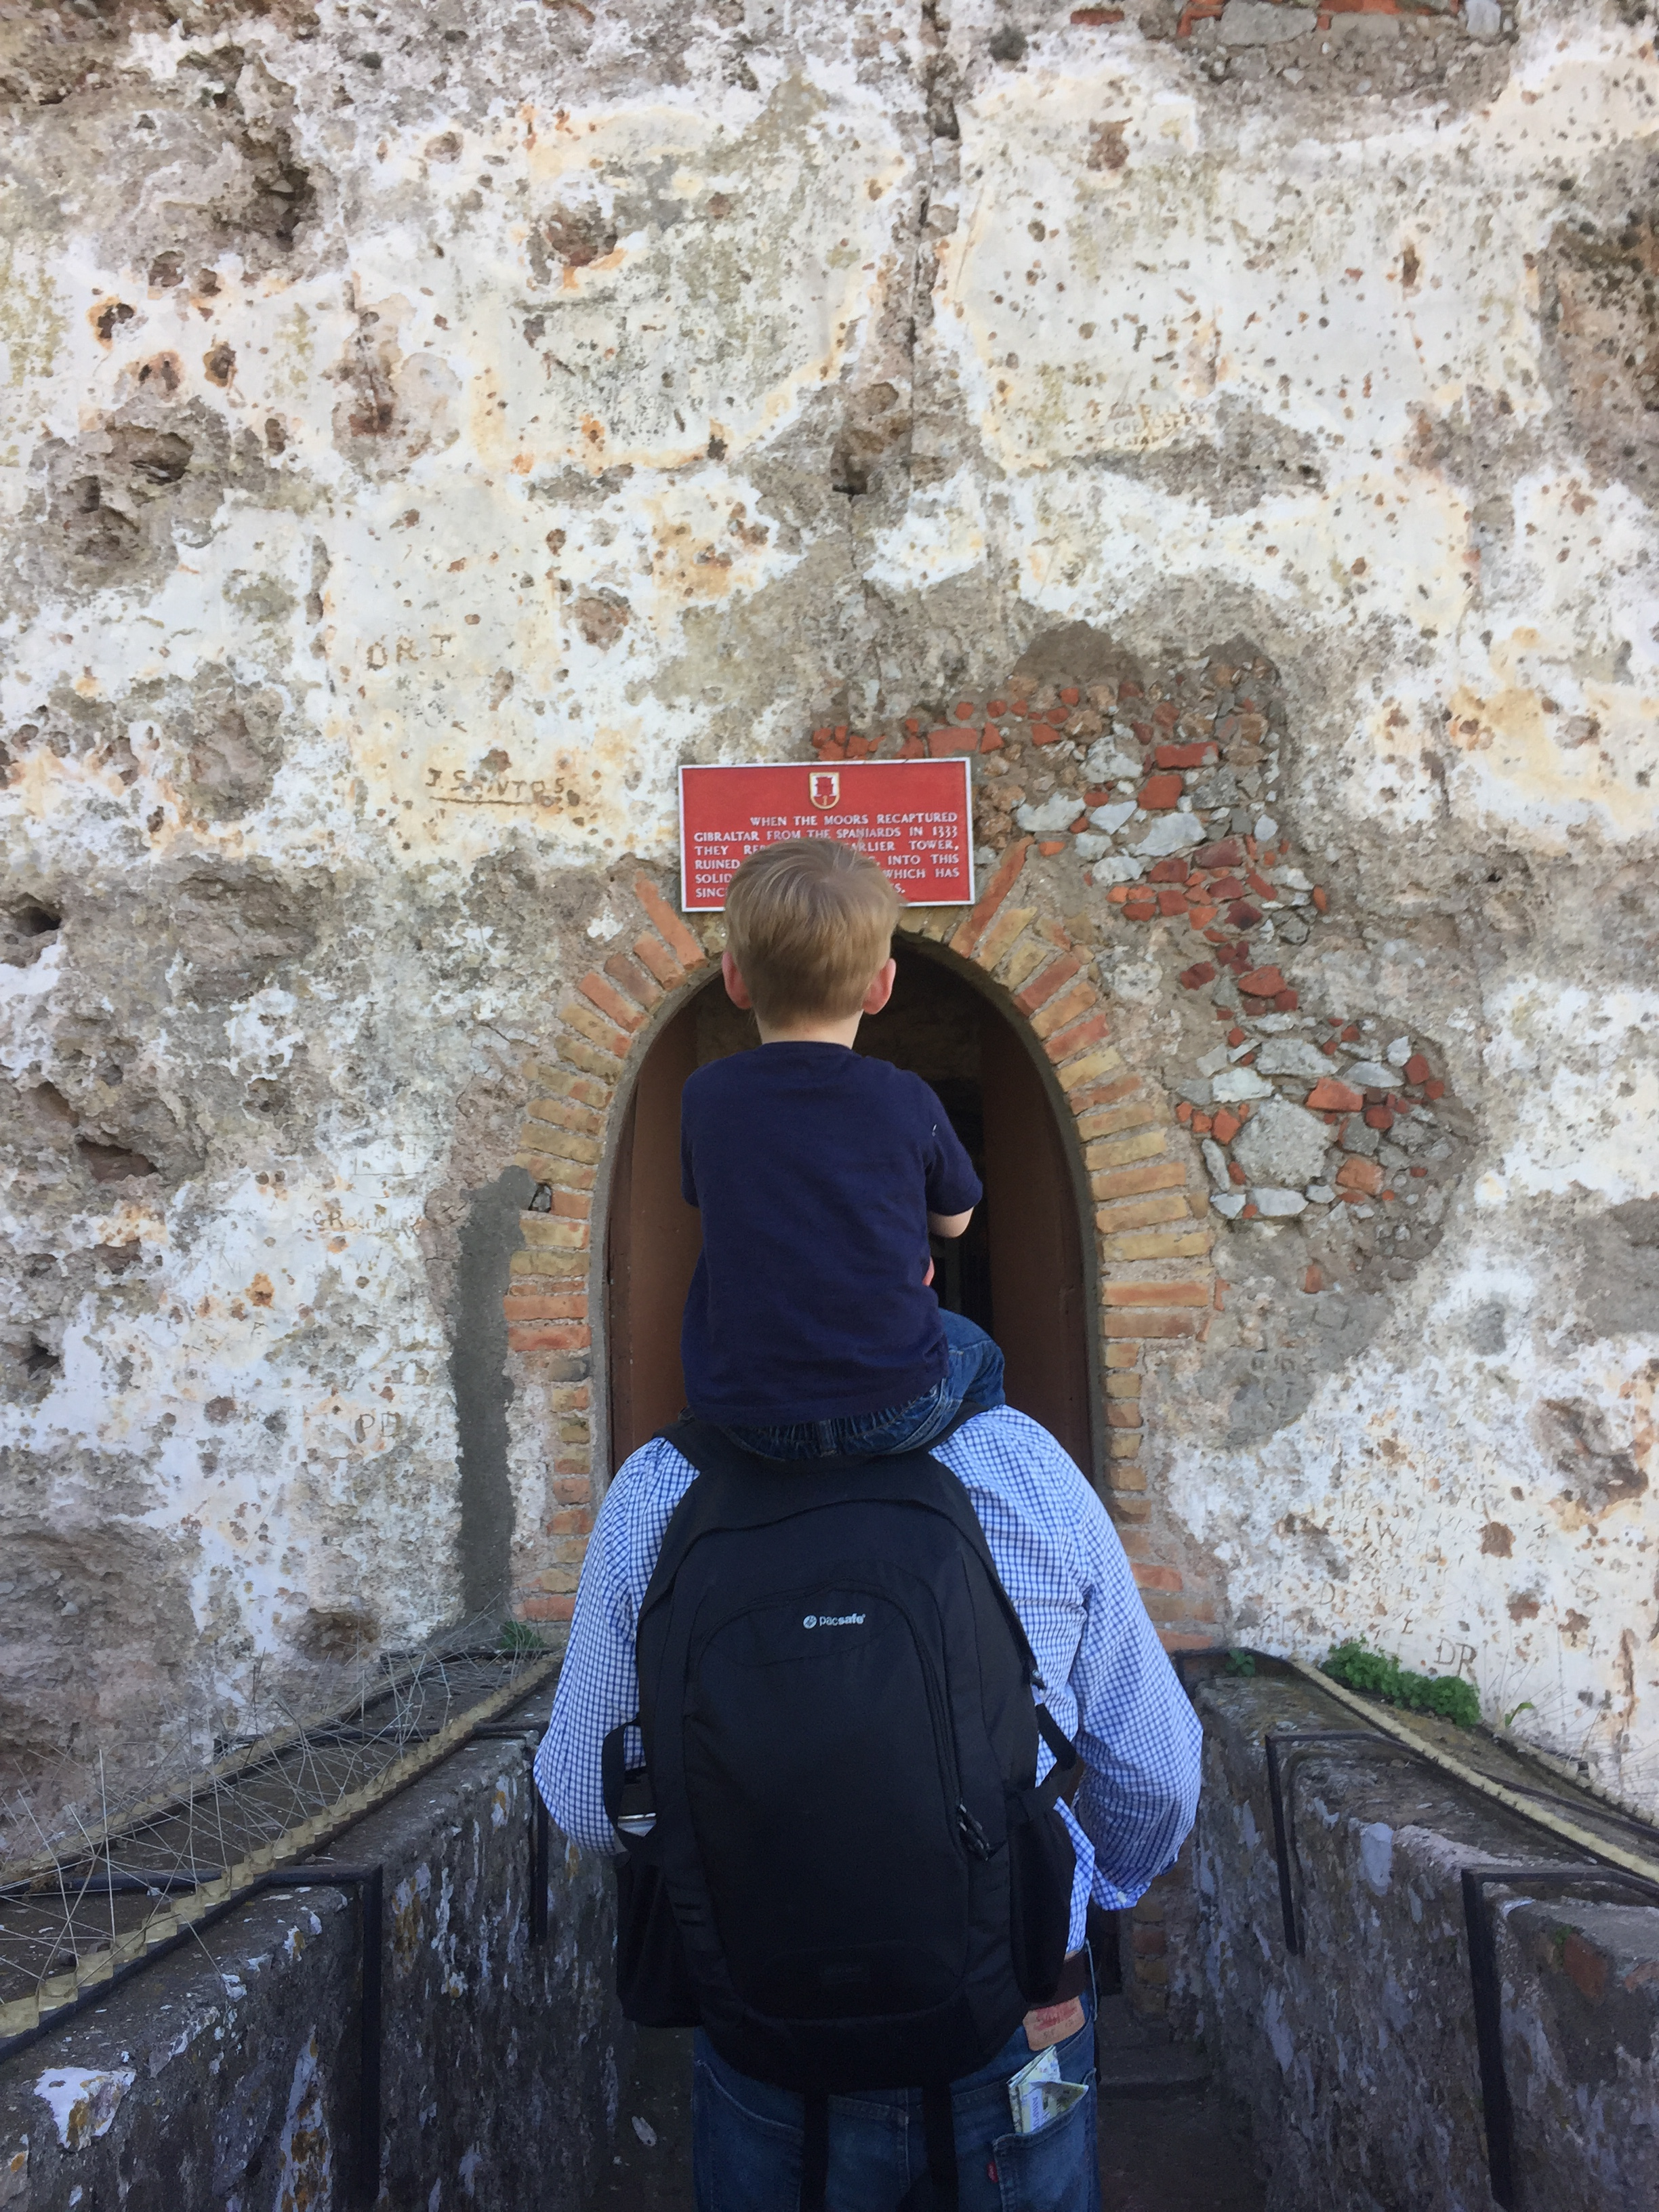 Entering the Moorish Castle